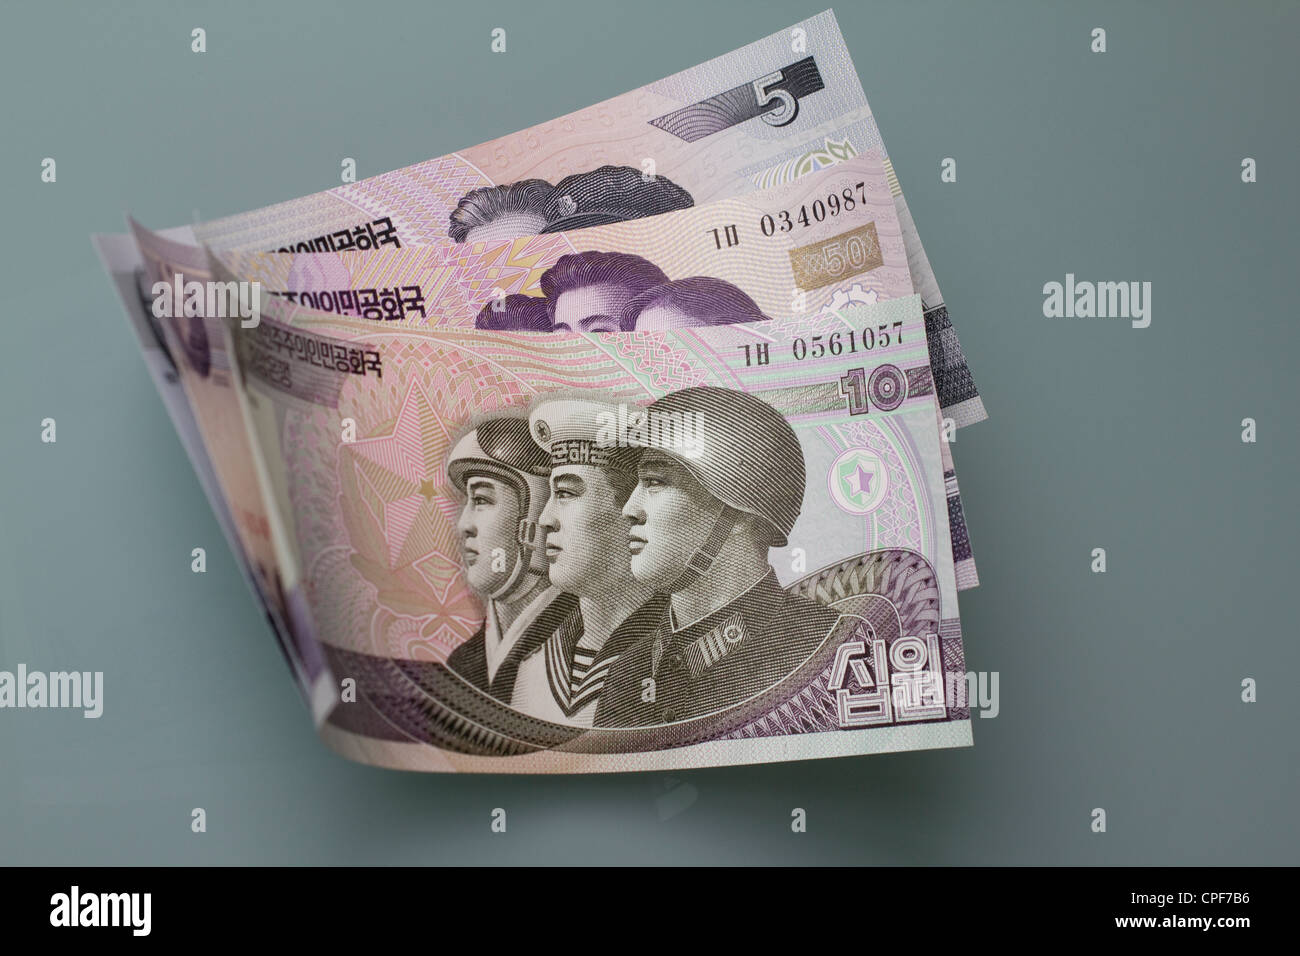 bank notes currency money cash korean won currency of north korea, Democratic People's Republic of Korea DPRK Stock Photo